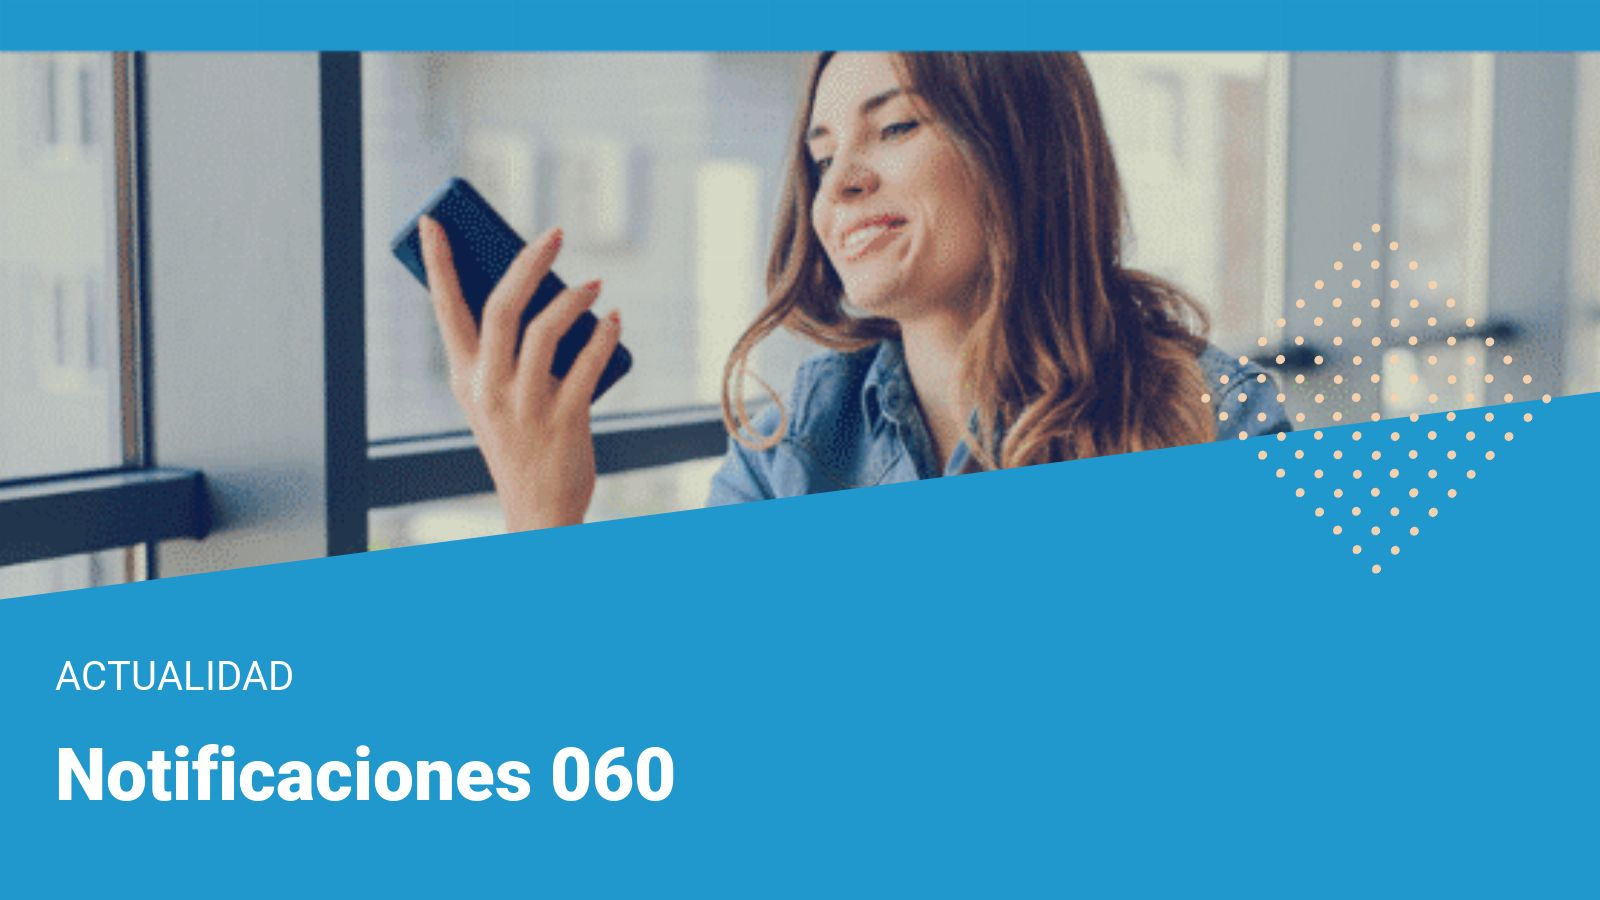 Notificaciones 060 y buzon 060